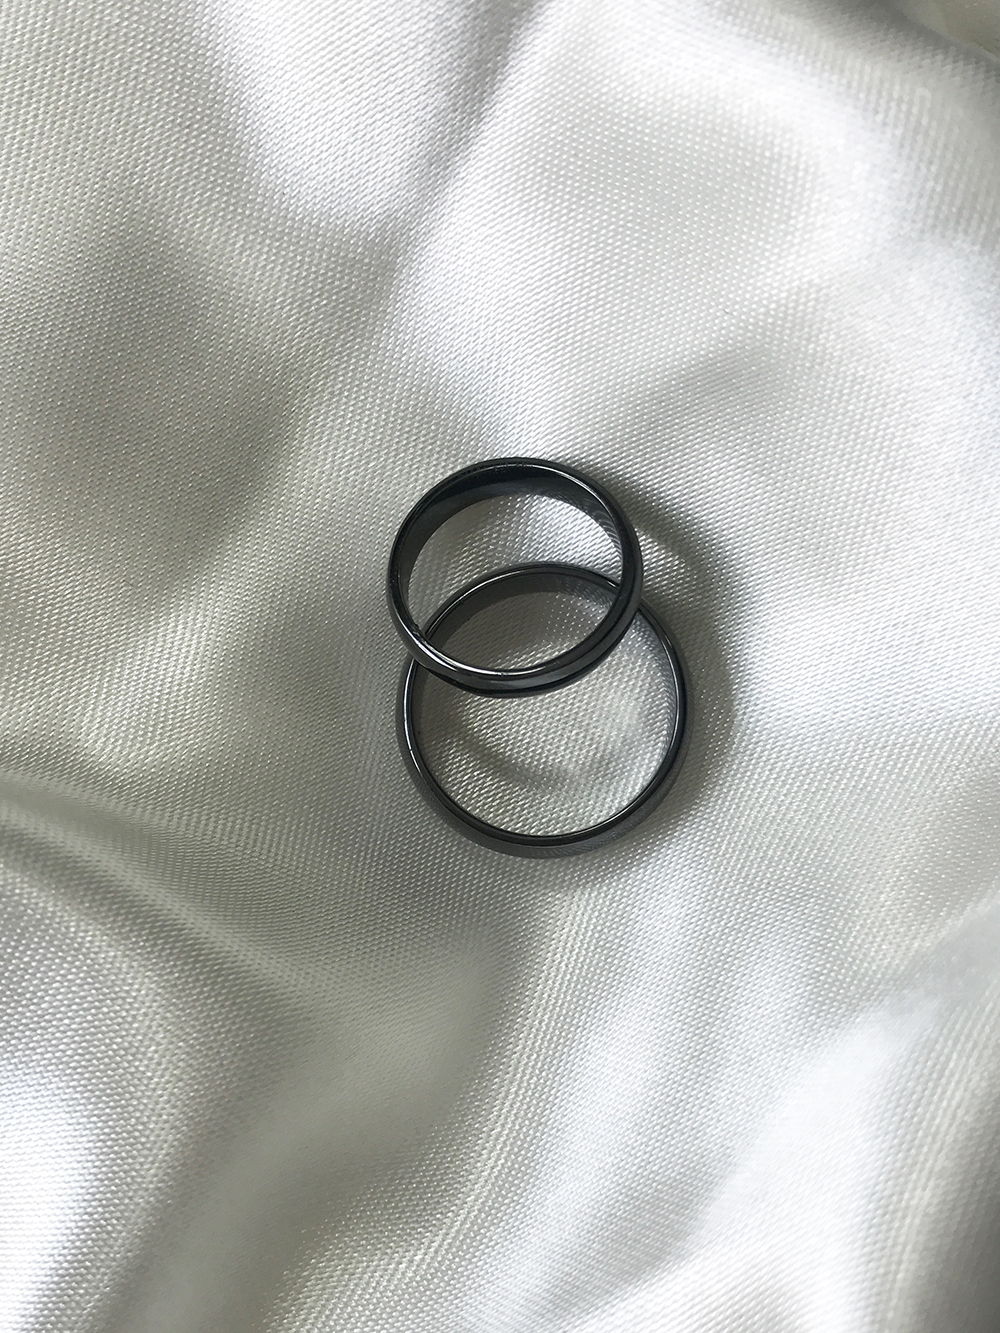 black wedding rings.jpg